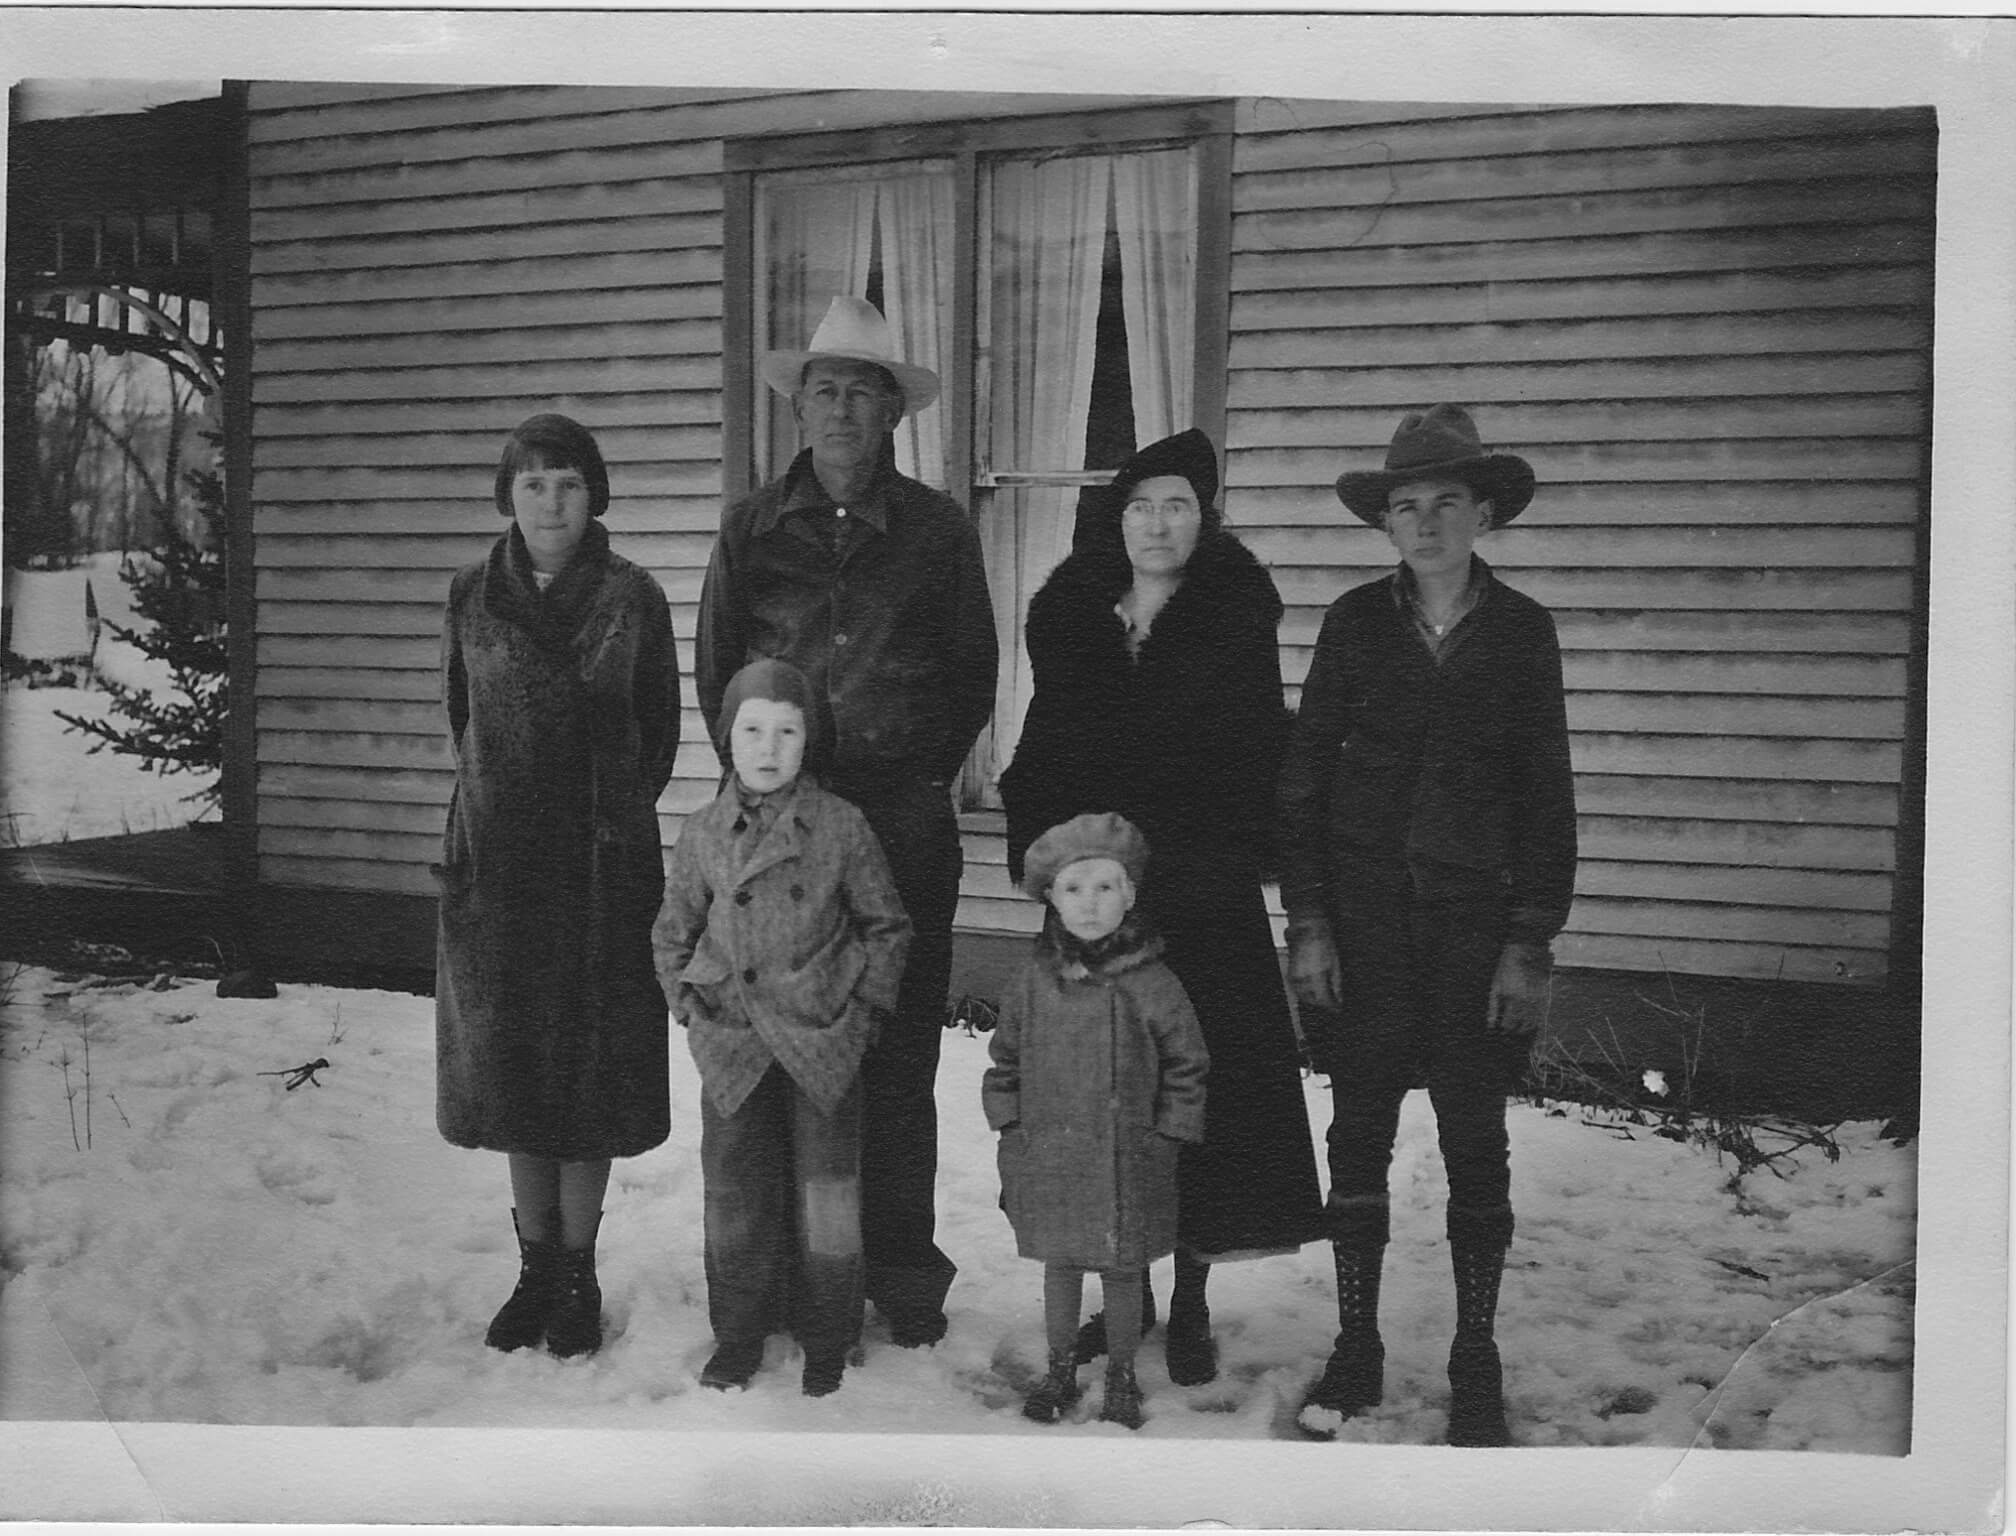 western history Old black and white historical photo of husband, wife and 4 kids standing with coats and hats on outside of a house in the snow